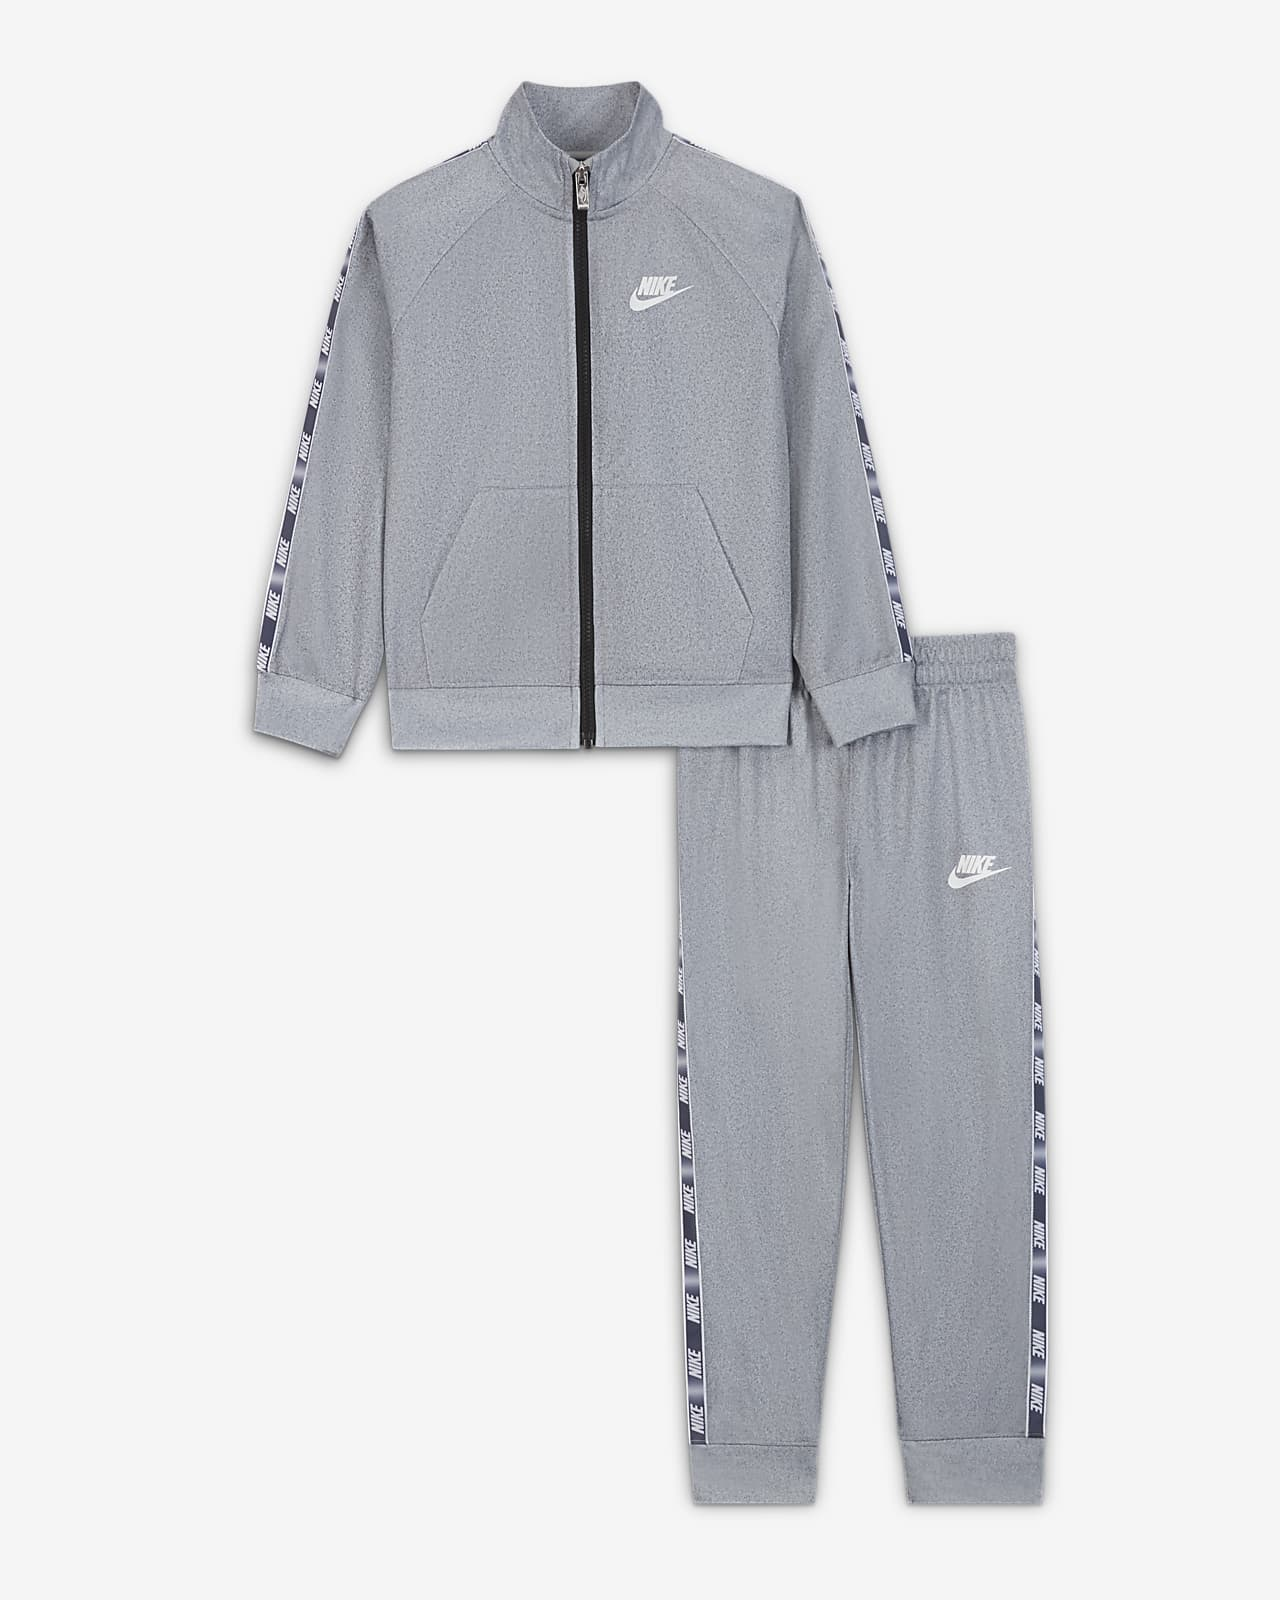 Nike Little Kids' Tracksuit Box Set